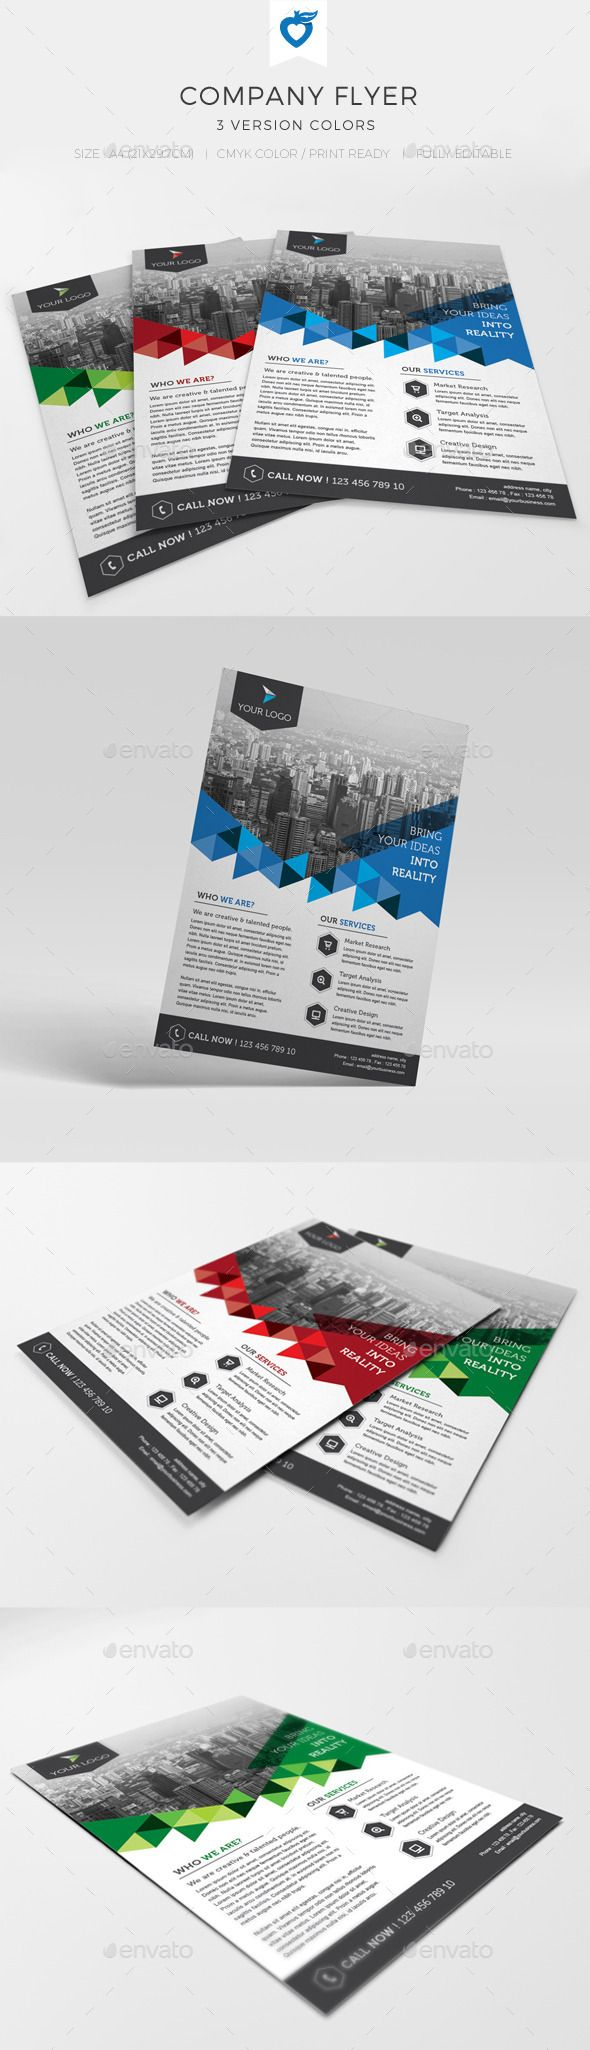 Company flyer flyer template template and business flyers company flyer corporate flyers flashek Gallery